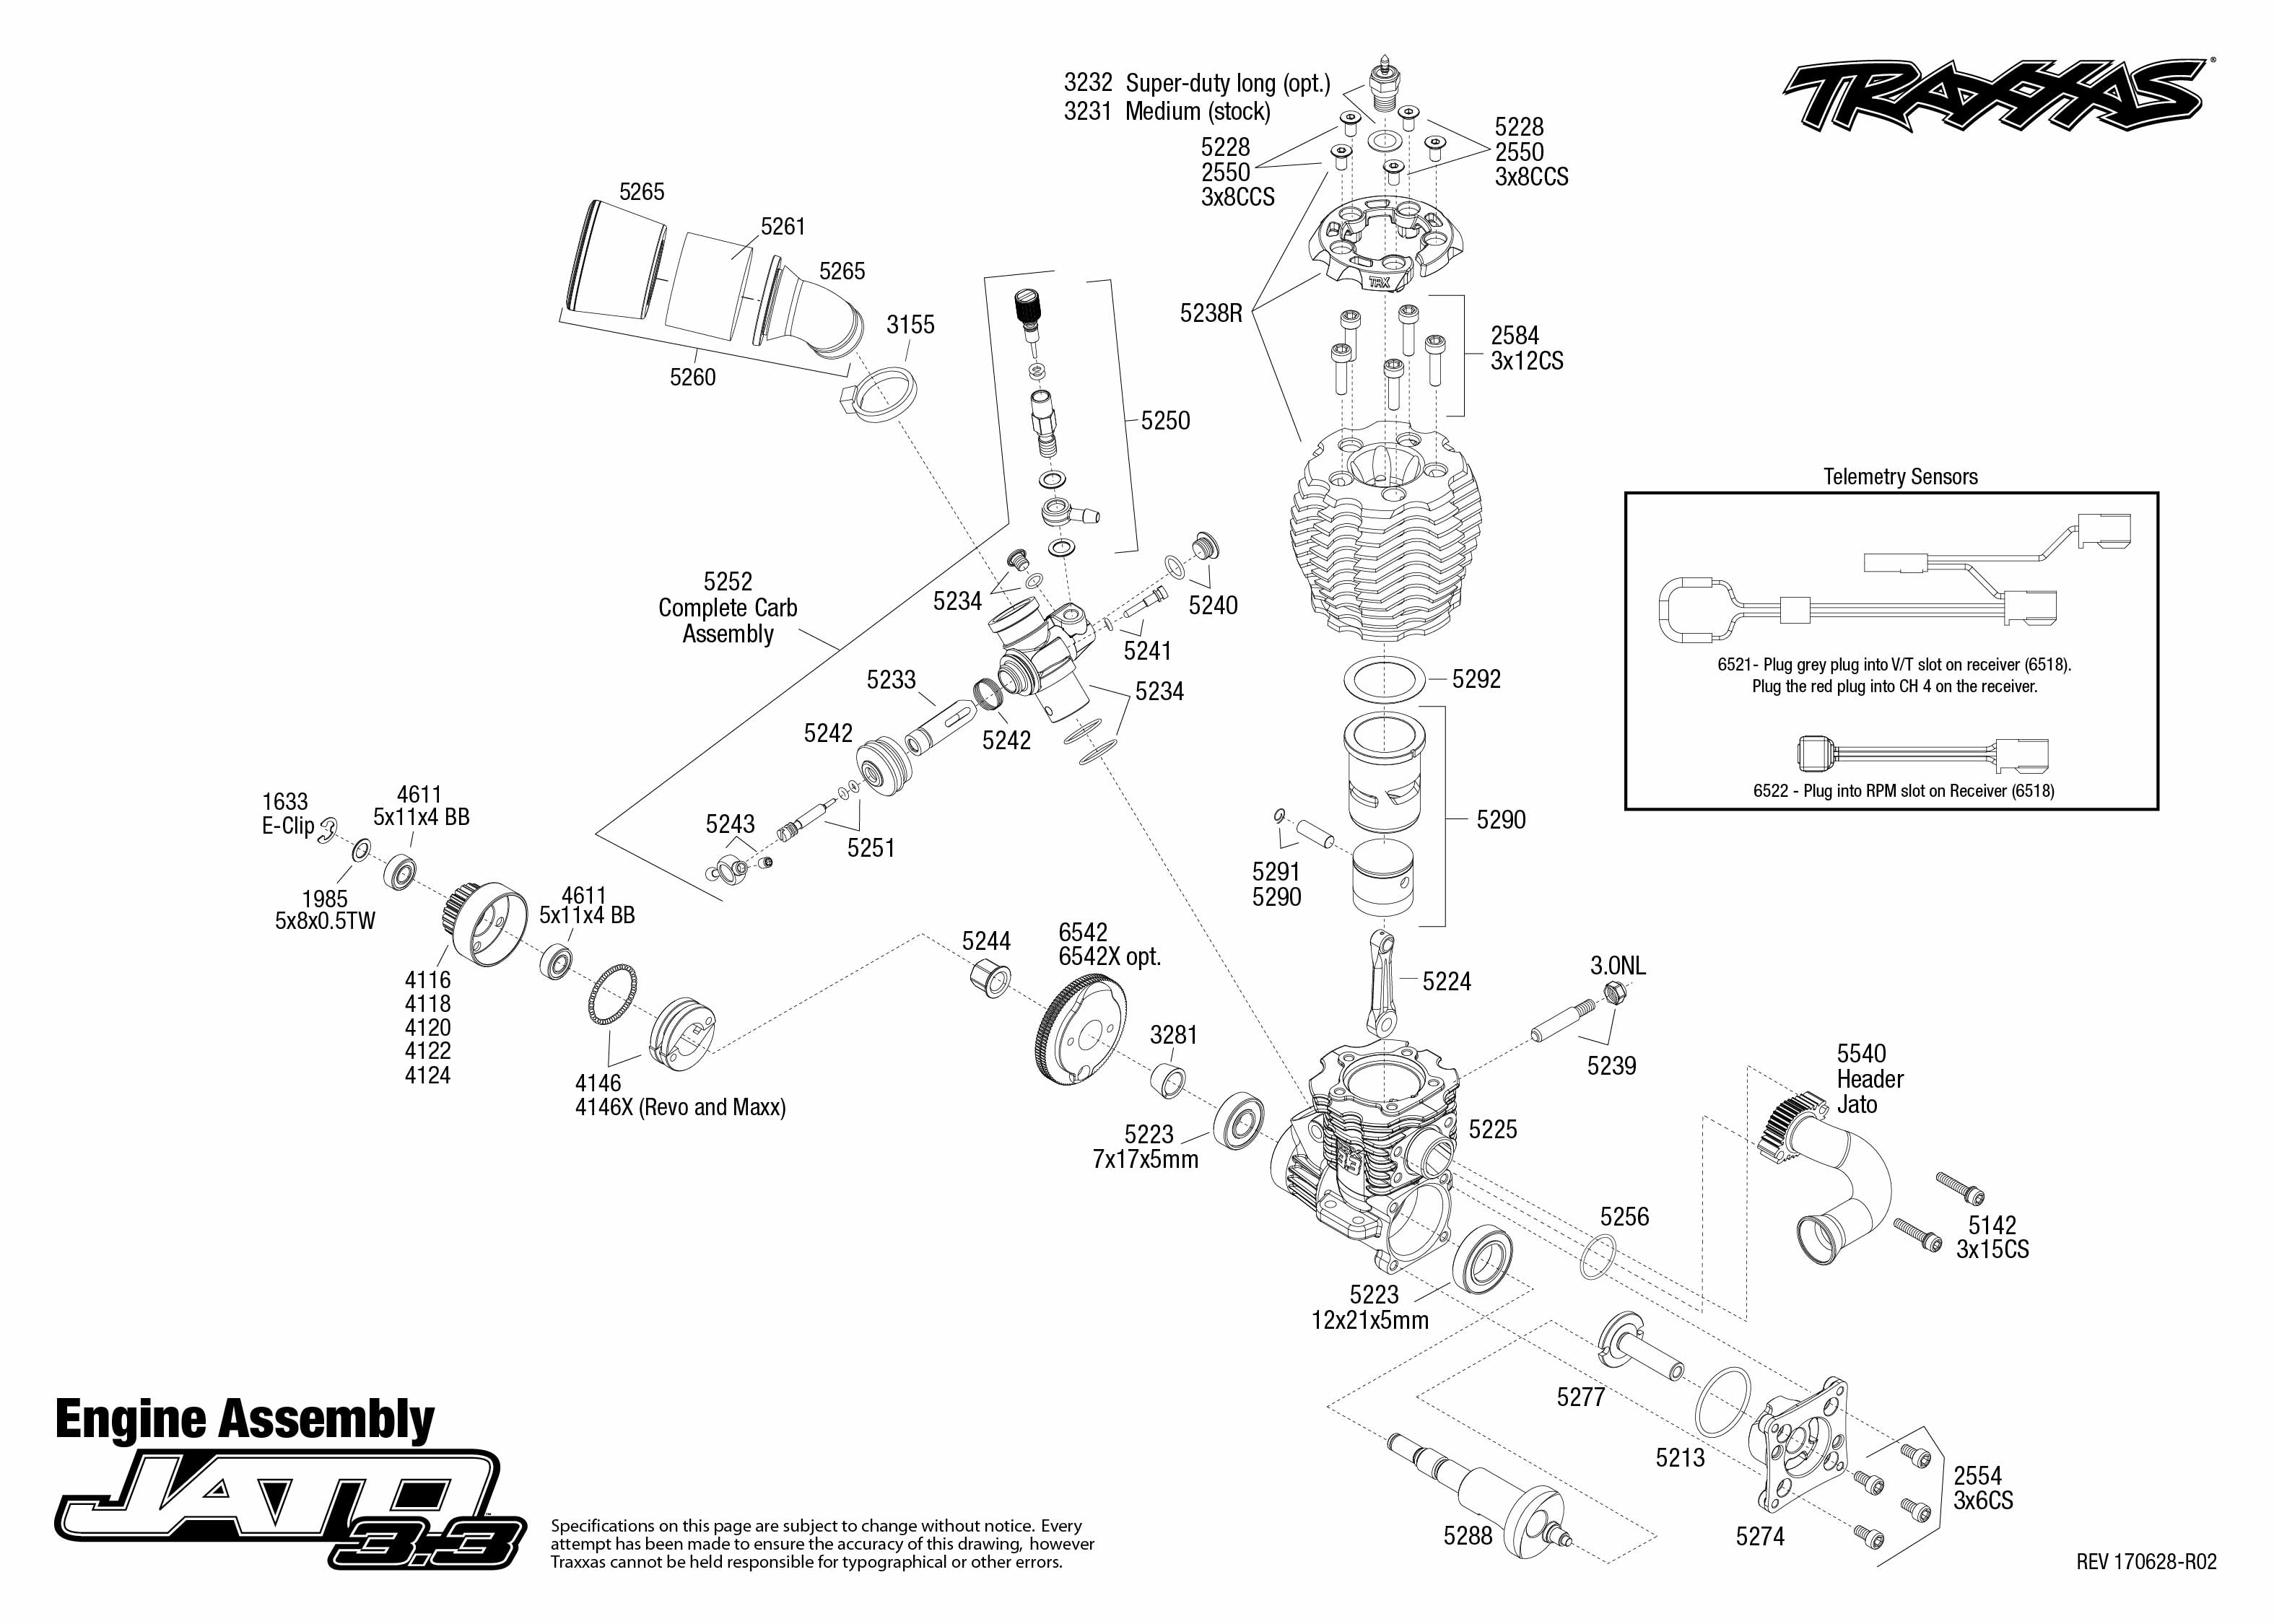 jato 3 3 55077 1 engine assembly exploded view traxxas